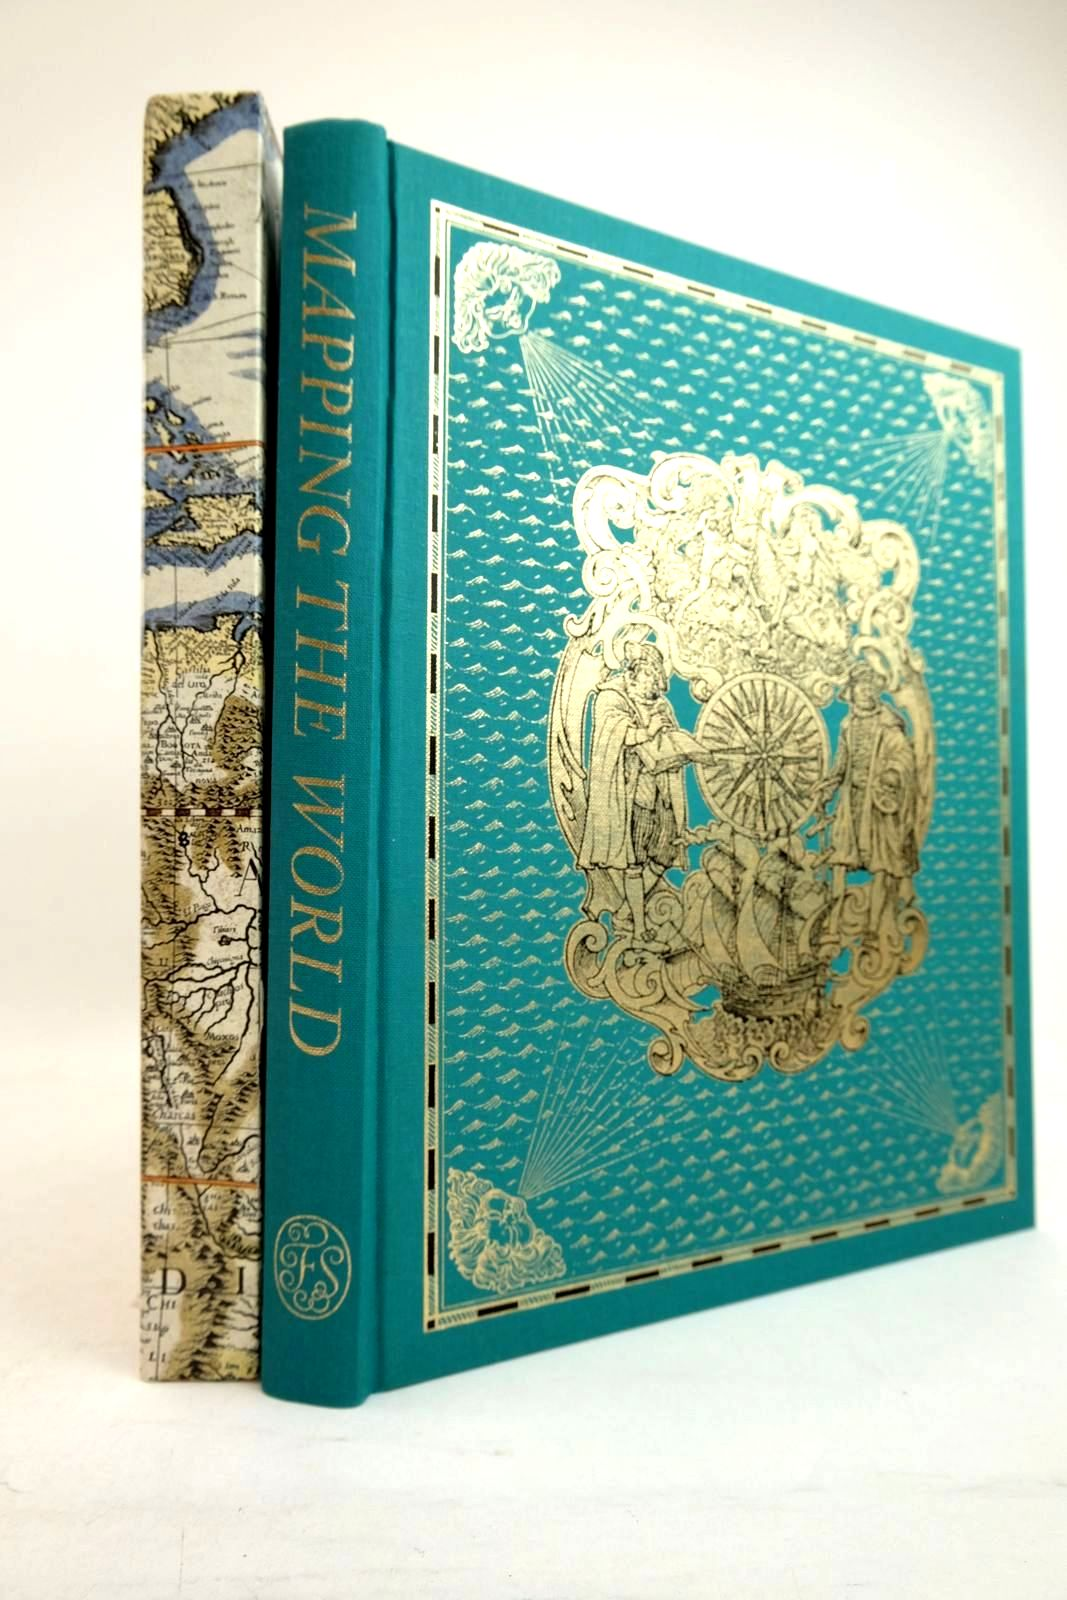 Photo of MAPPING THE WORLD written by Whitfield, Peter published by Folio Society (STOCK CODE: 2134395)  for sale by Stella & Rose's Books